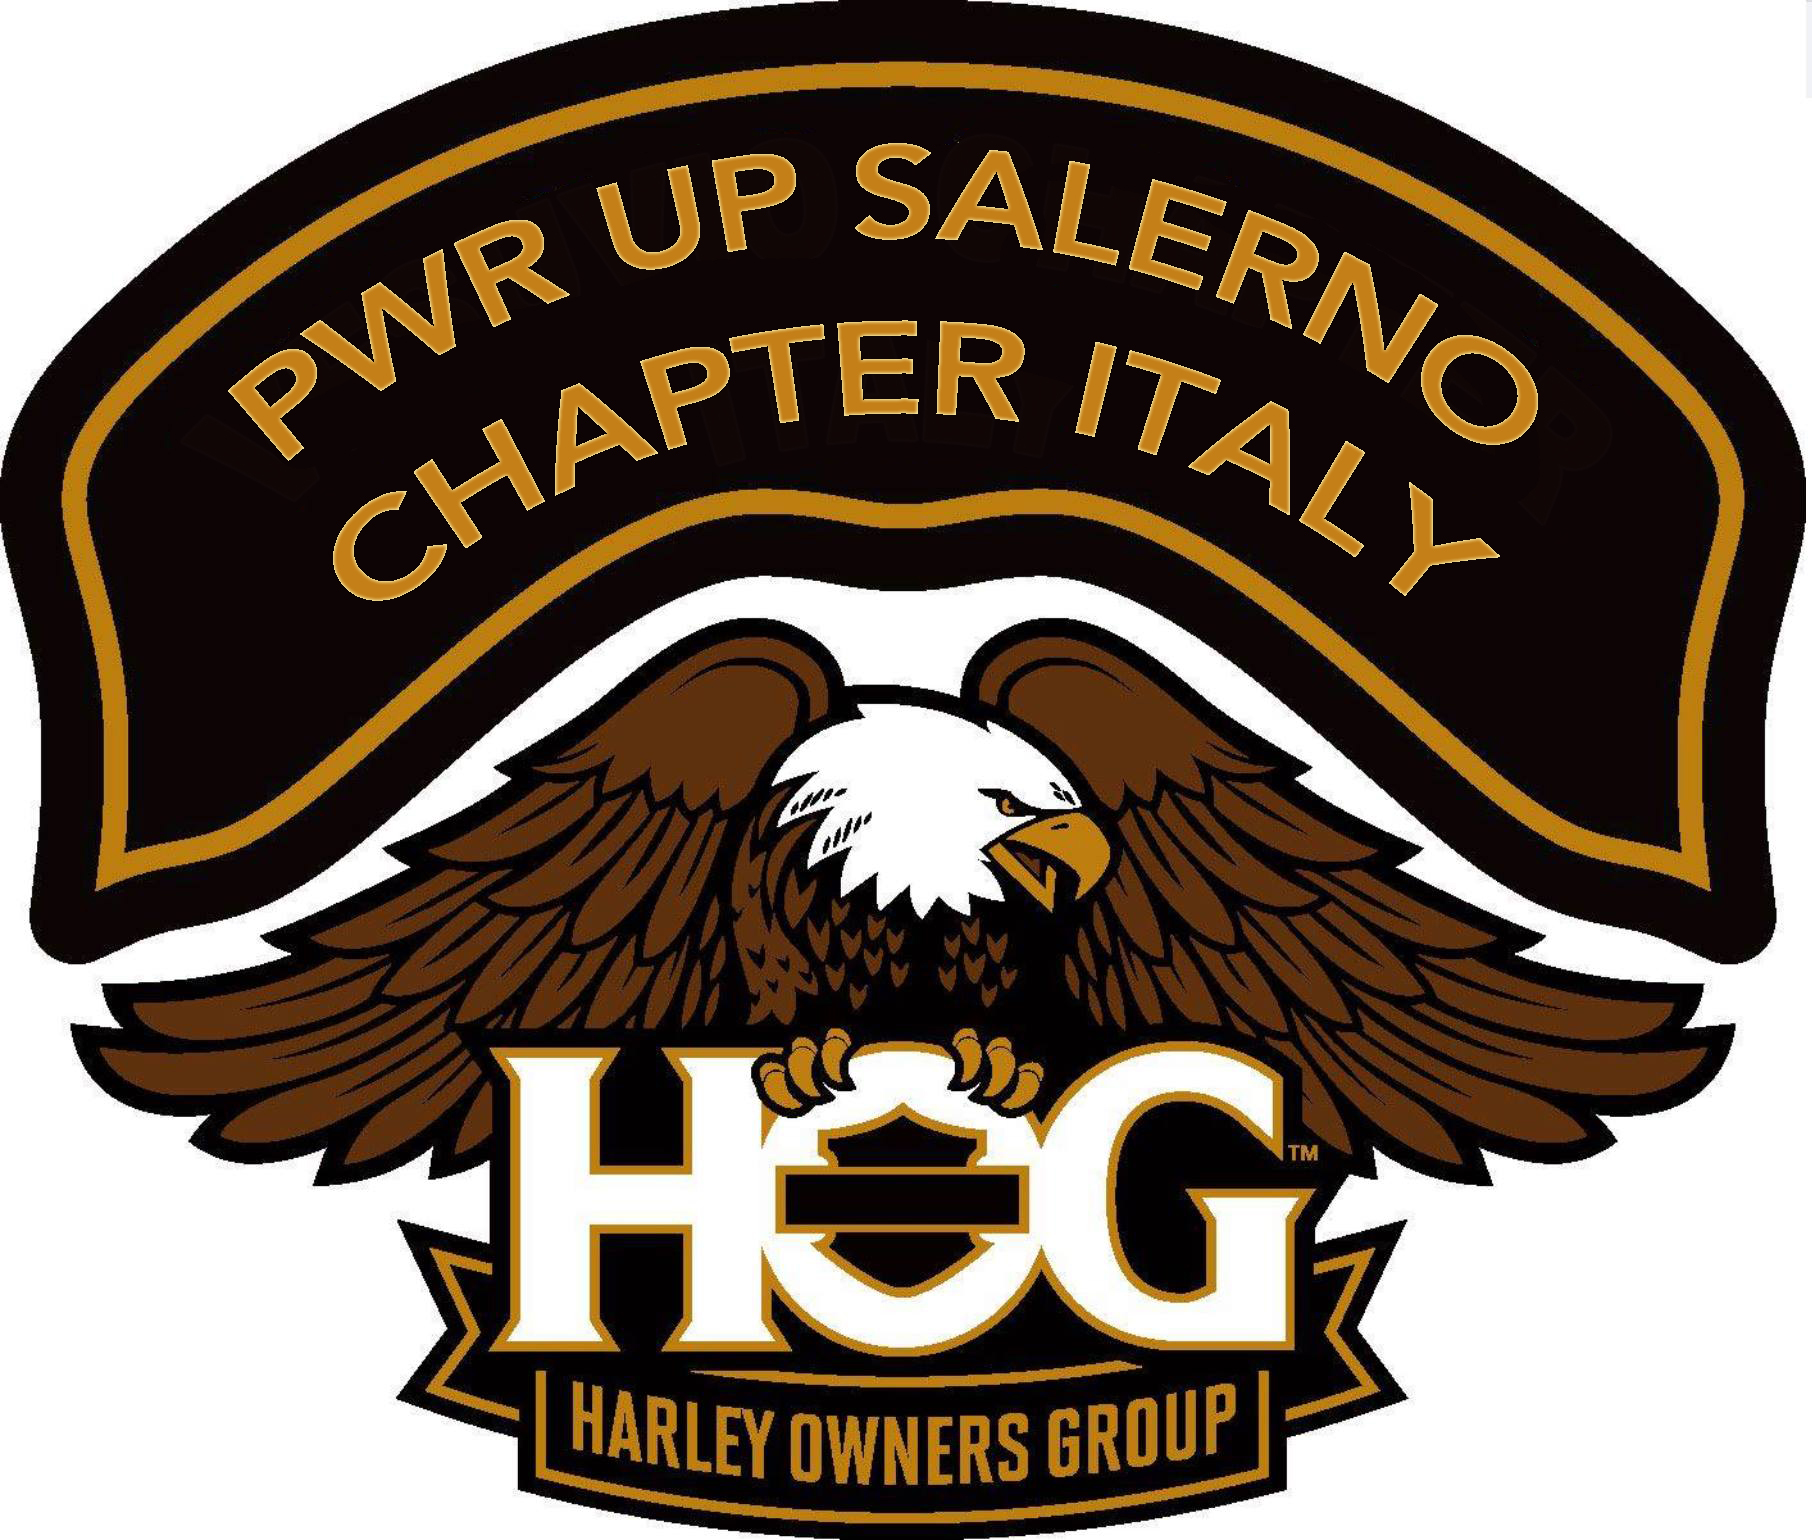 PWR UP SALERNO CHAPTER ITALY